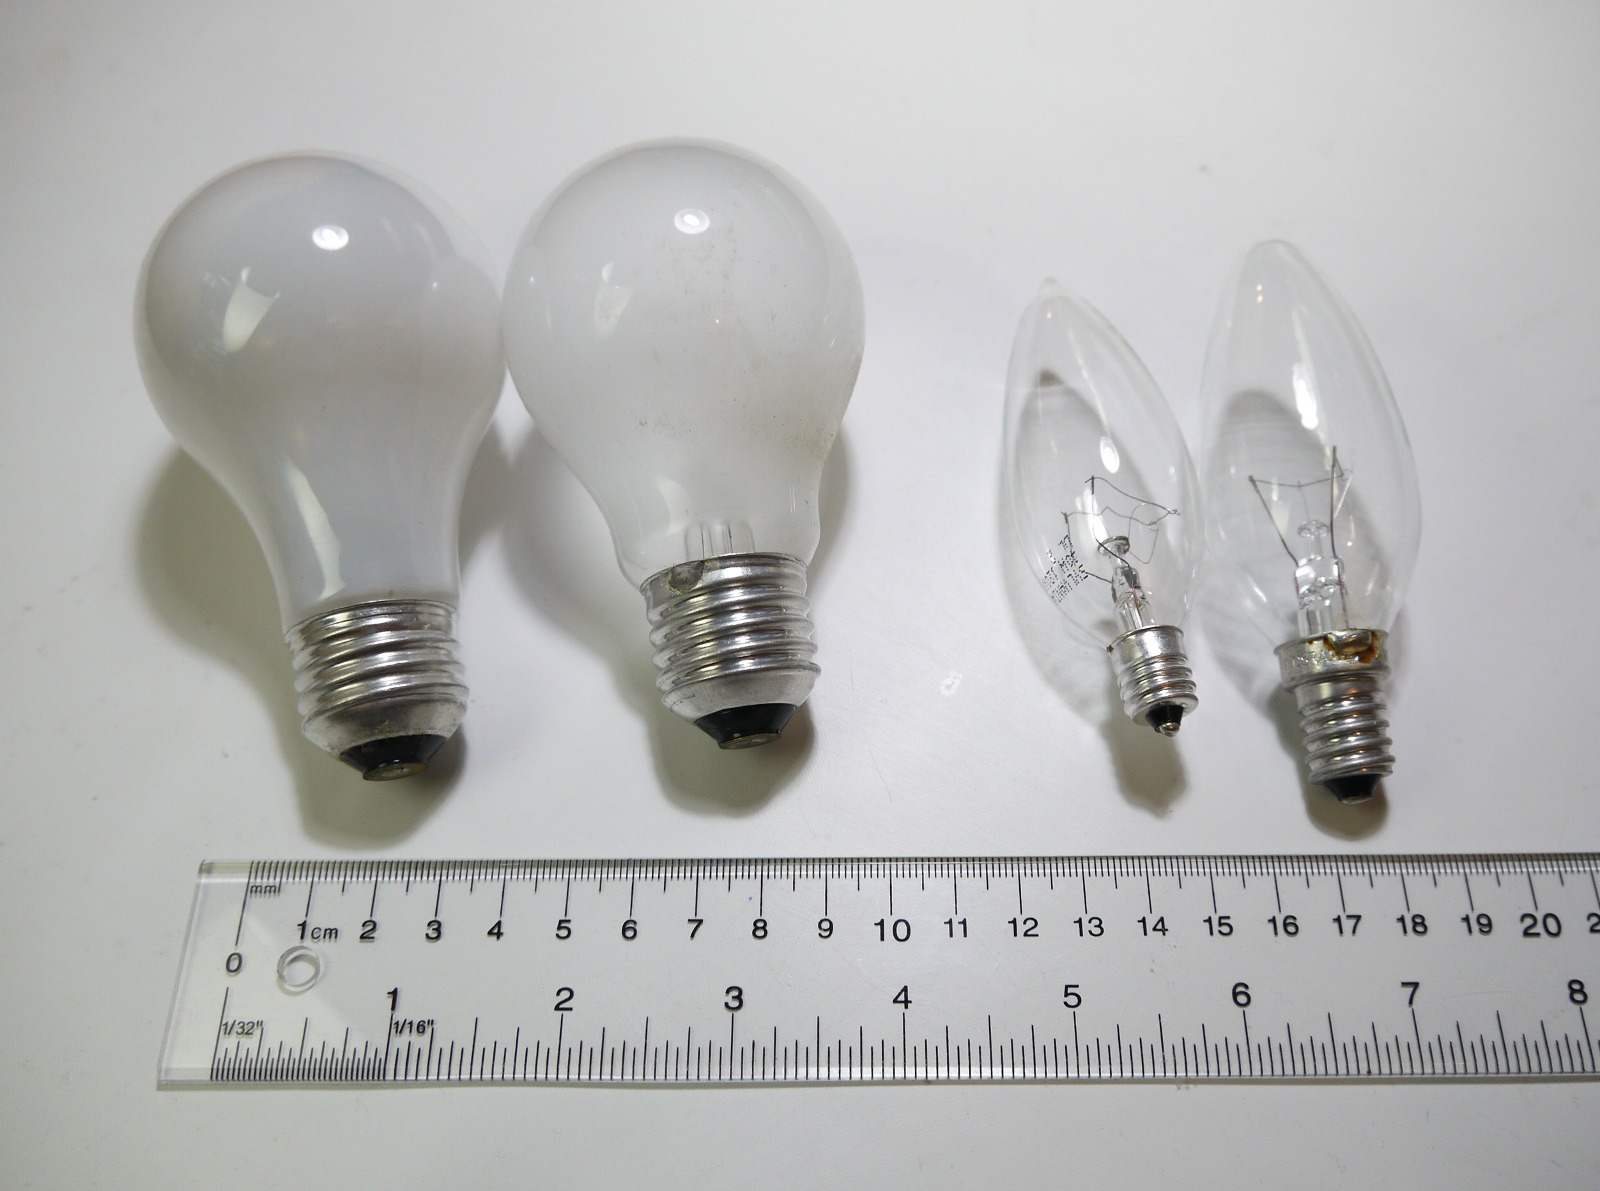 Light Socket Sizes